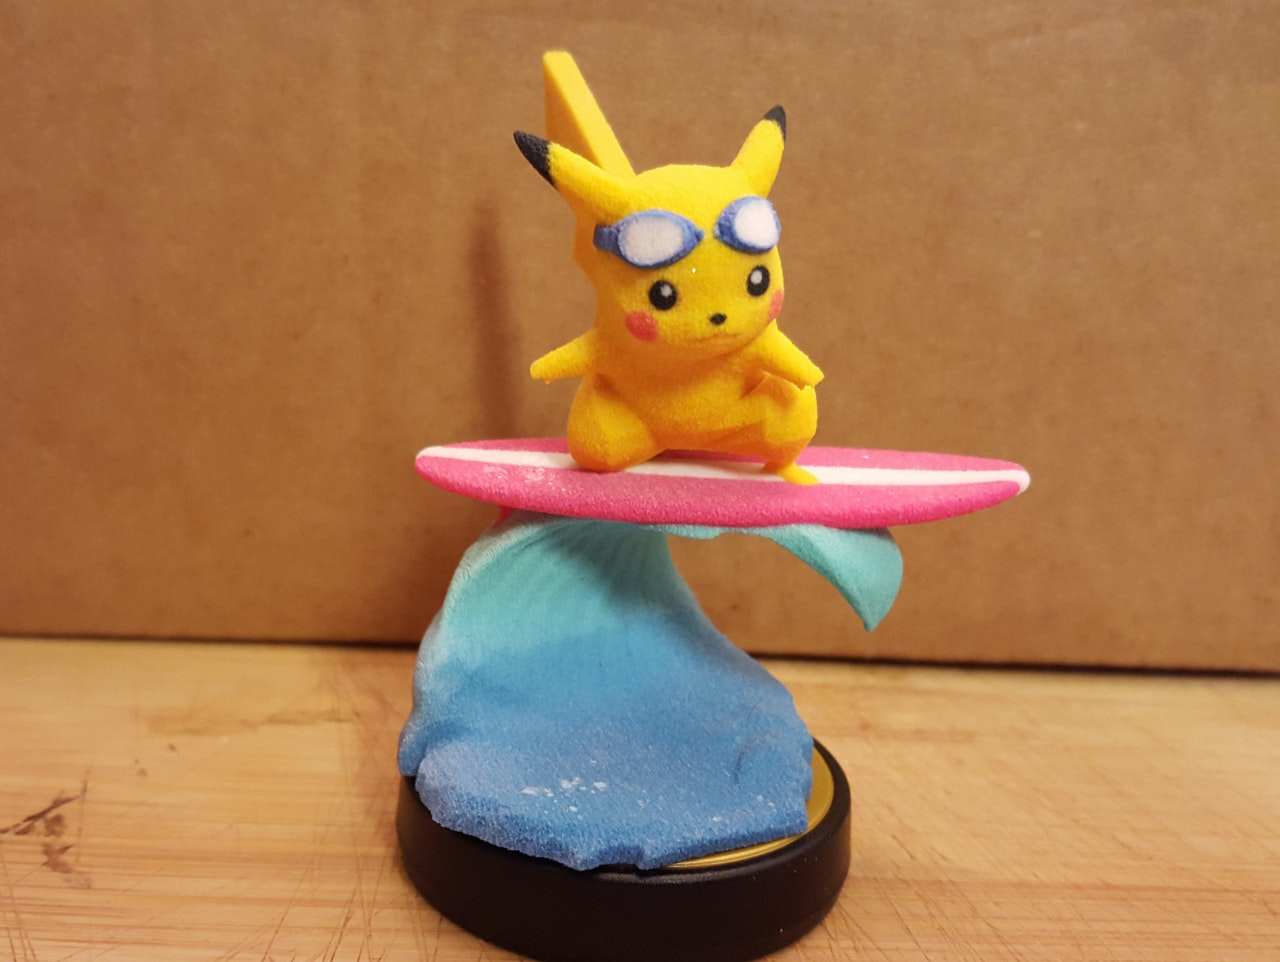 Surfin' Pikachu is ready to go.